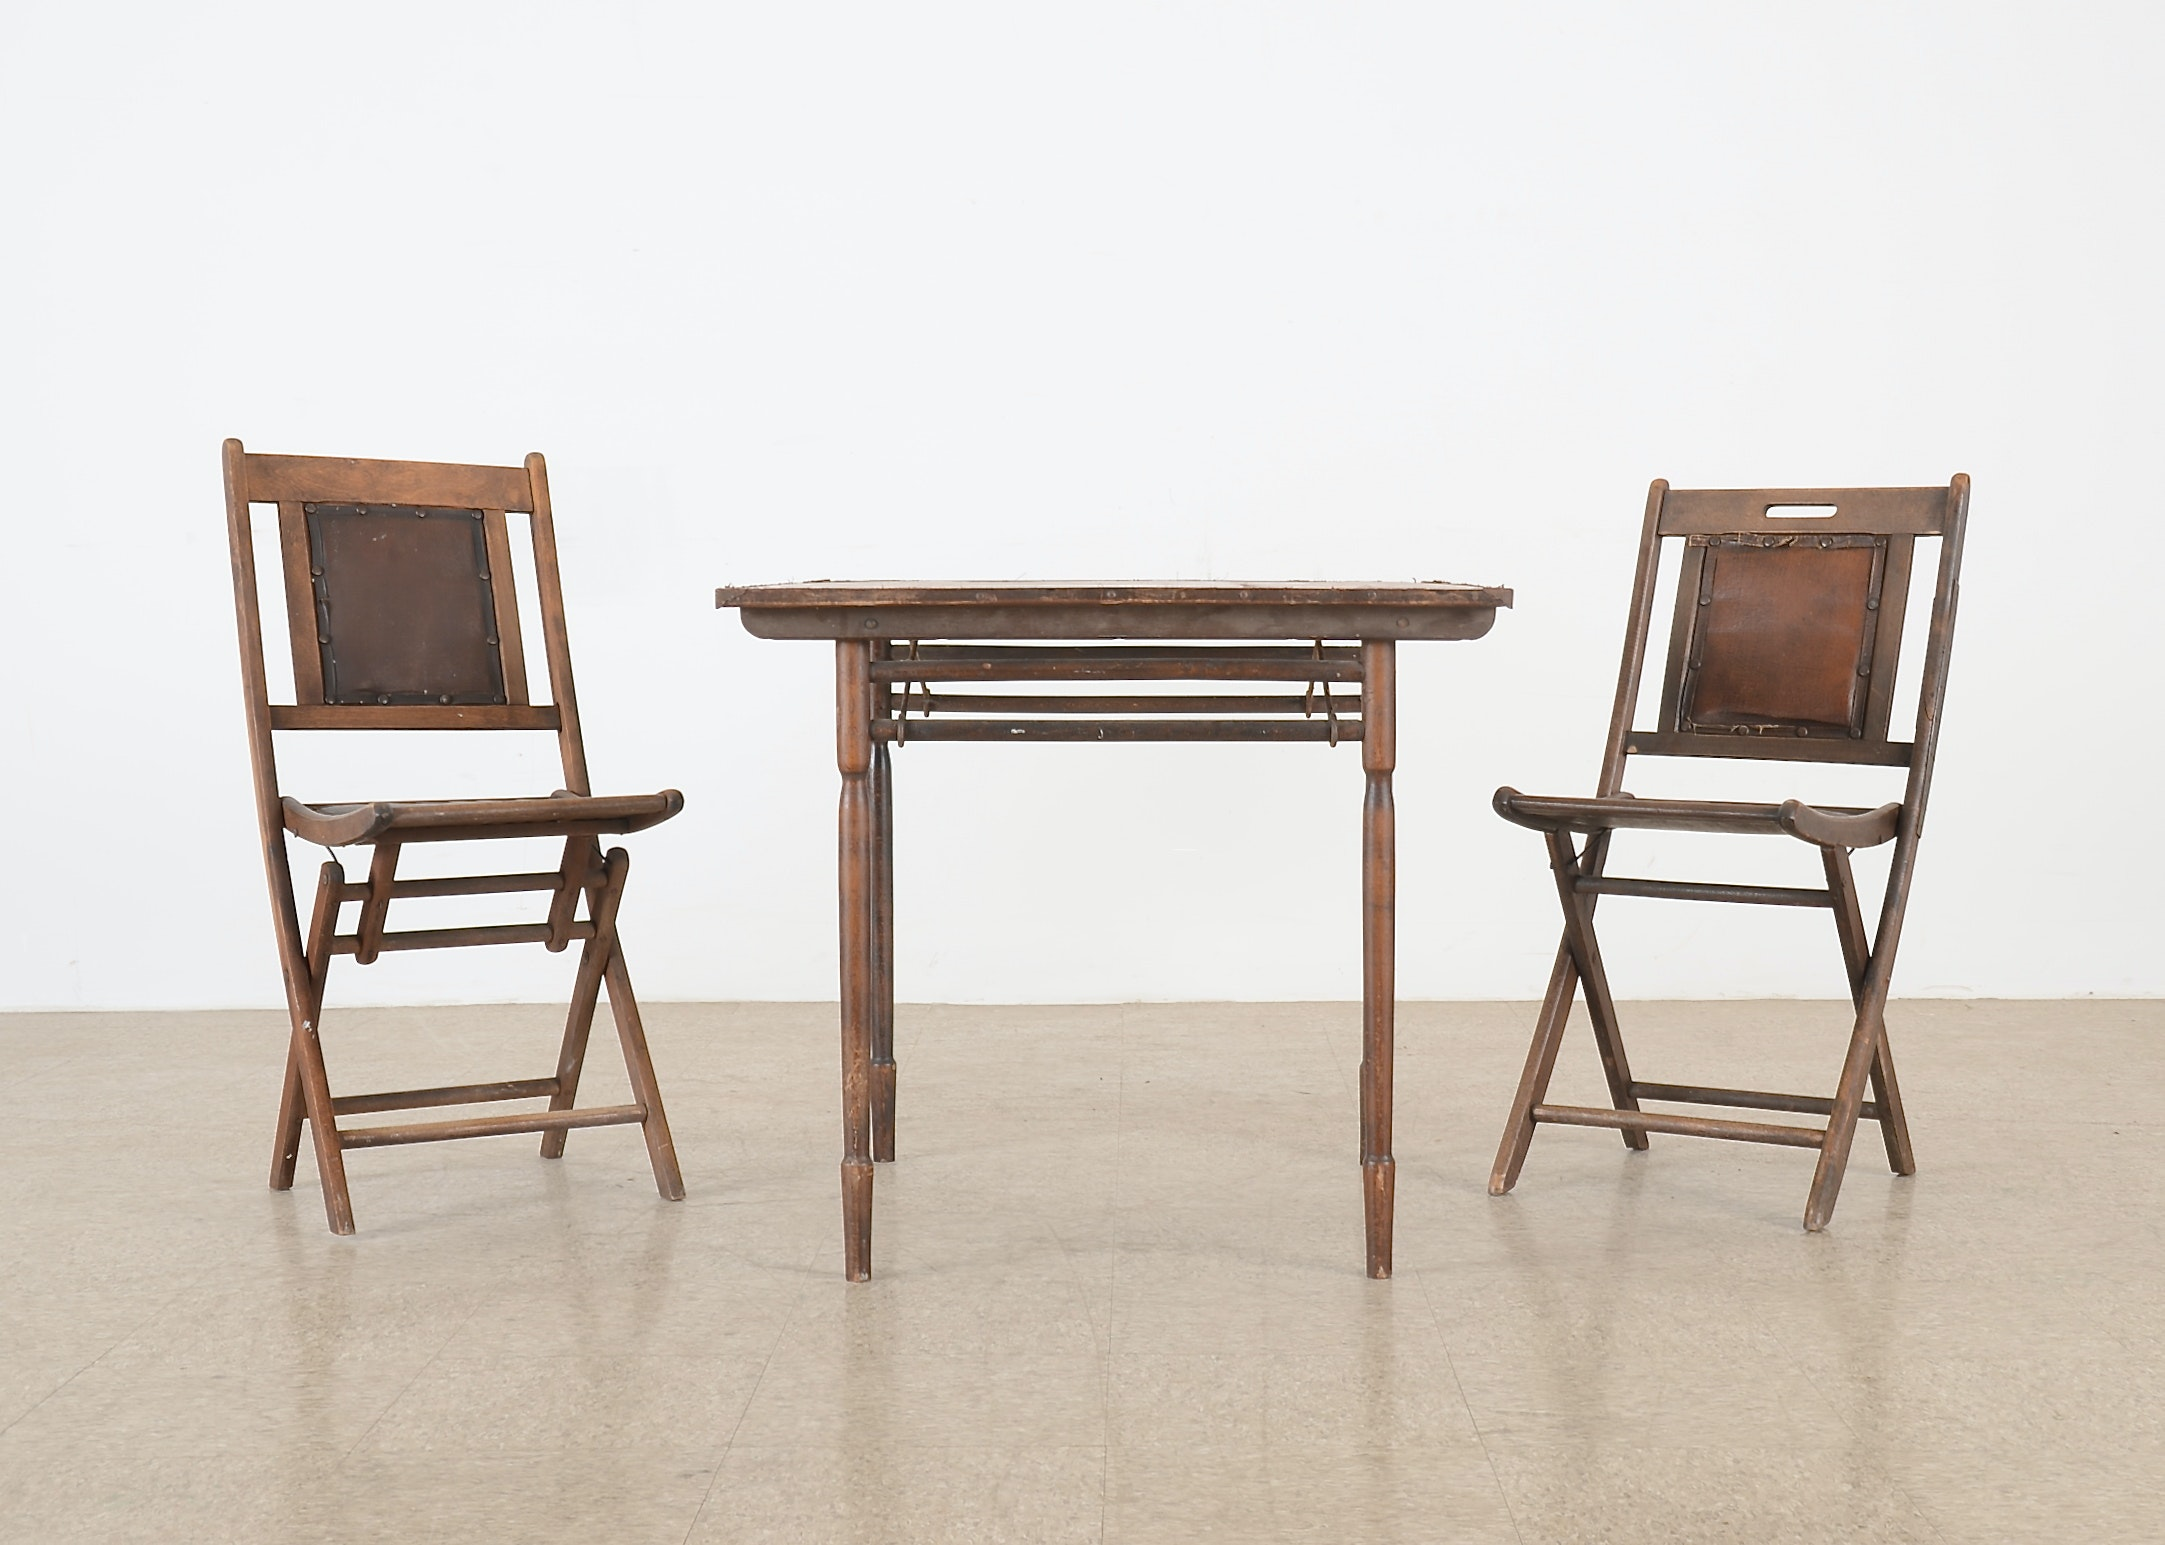 Circa 1930s Wooden Card Table And Two Wooden Folding Chairs ...